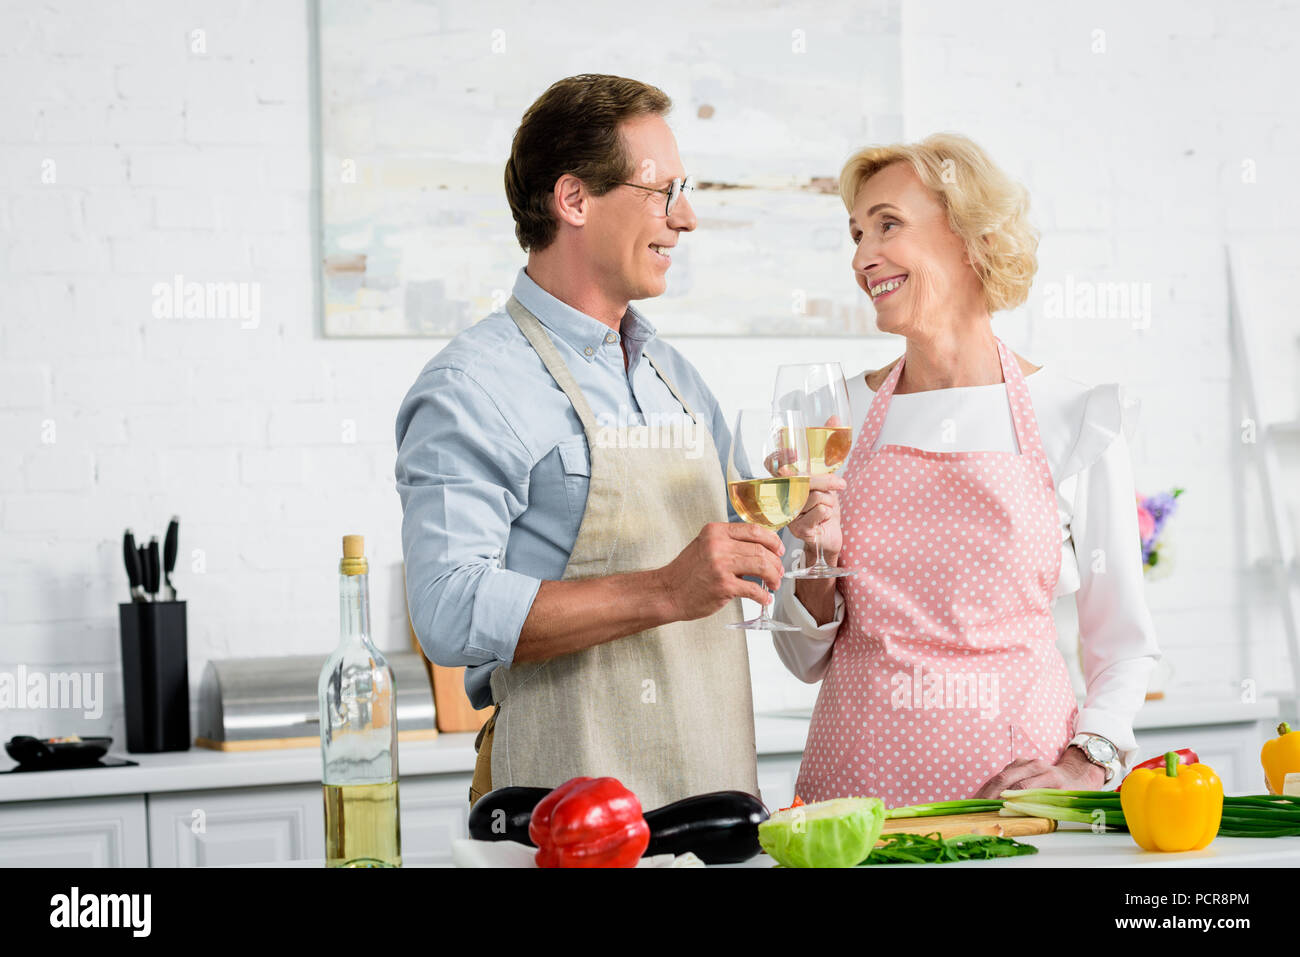 happy senior couple clinking with glasses of wine during cooking at kitchen and looking at each other - Stock Image